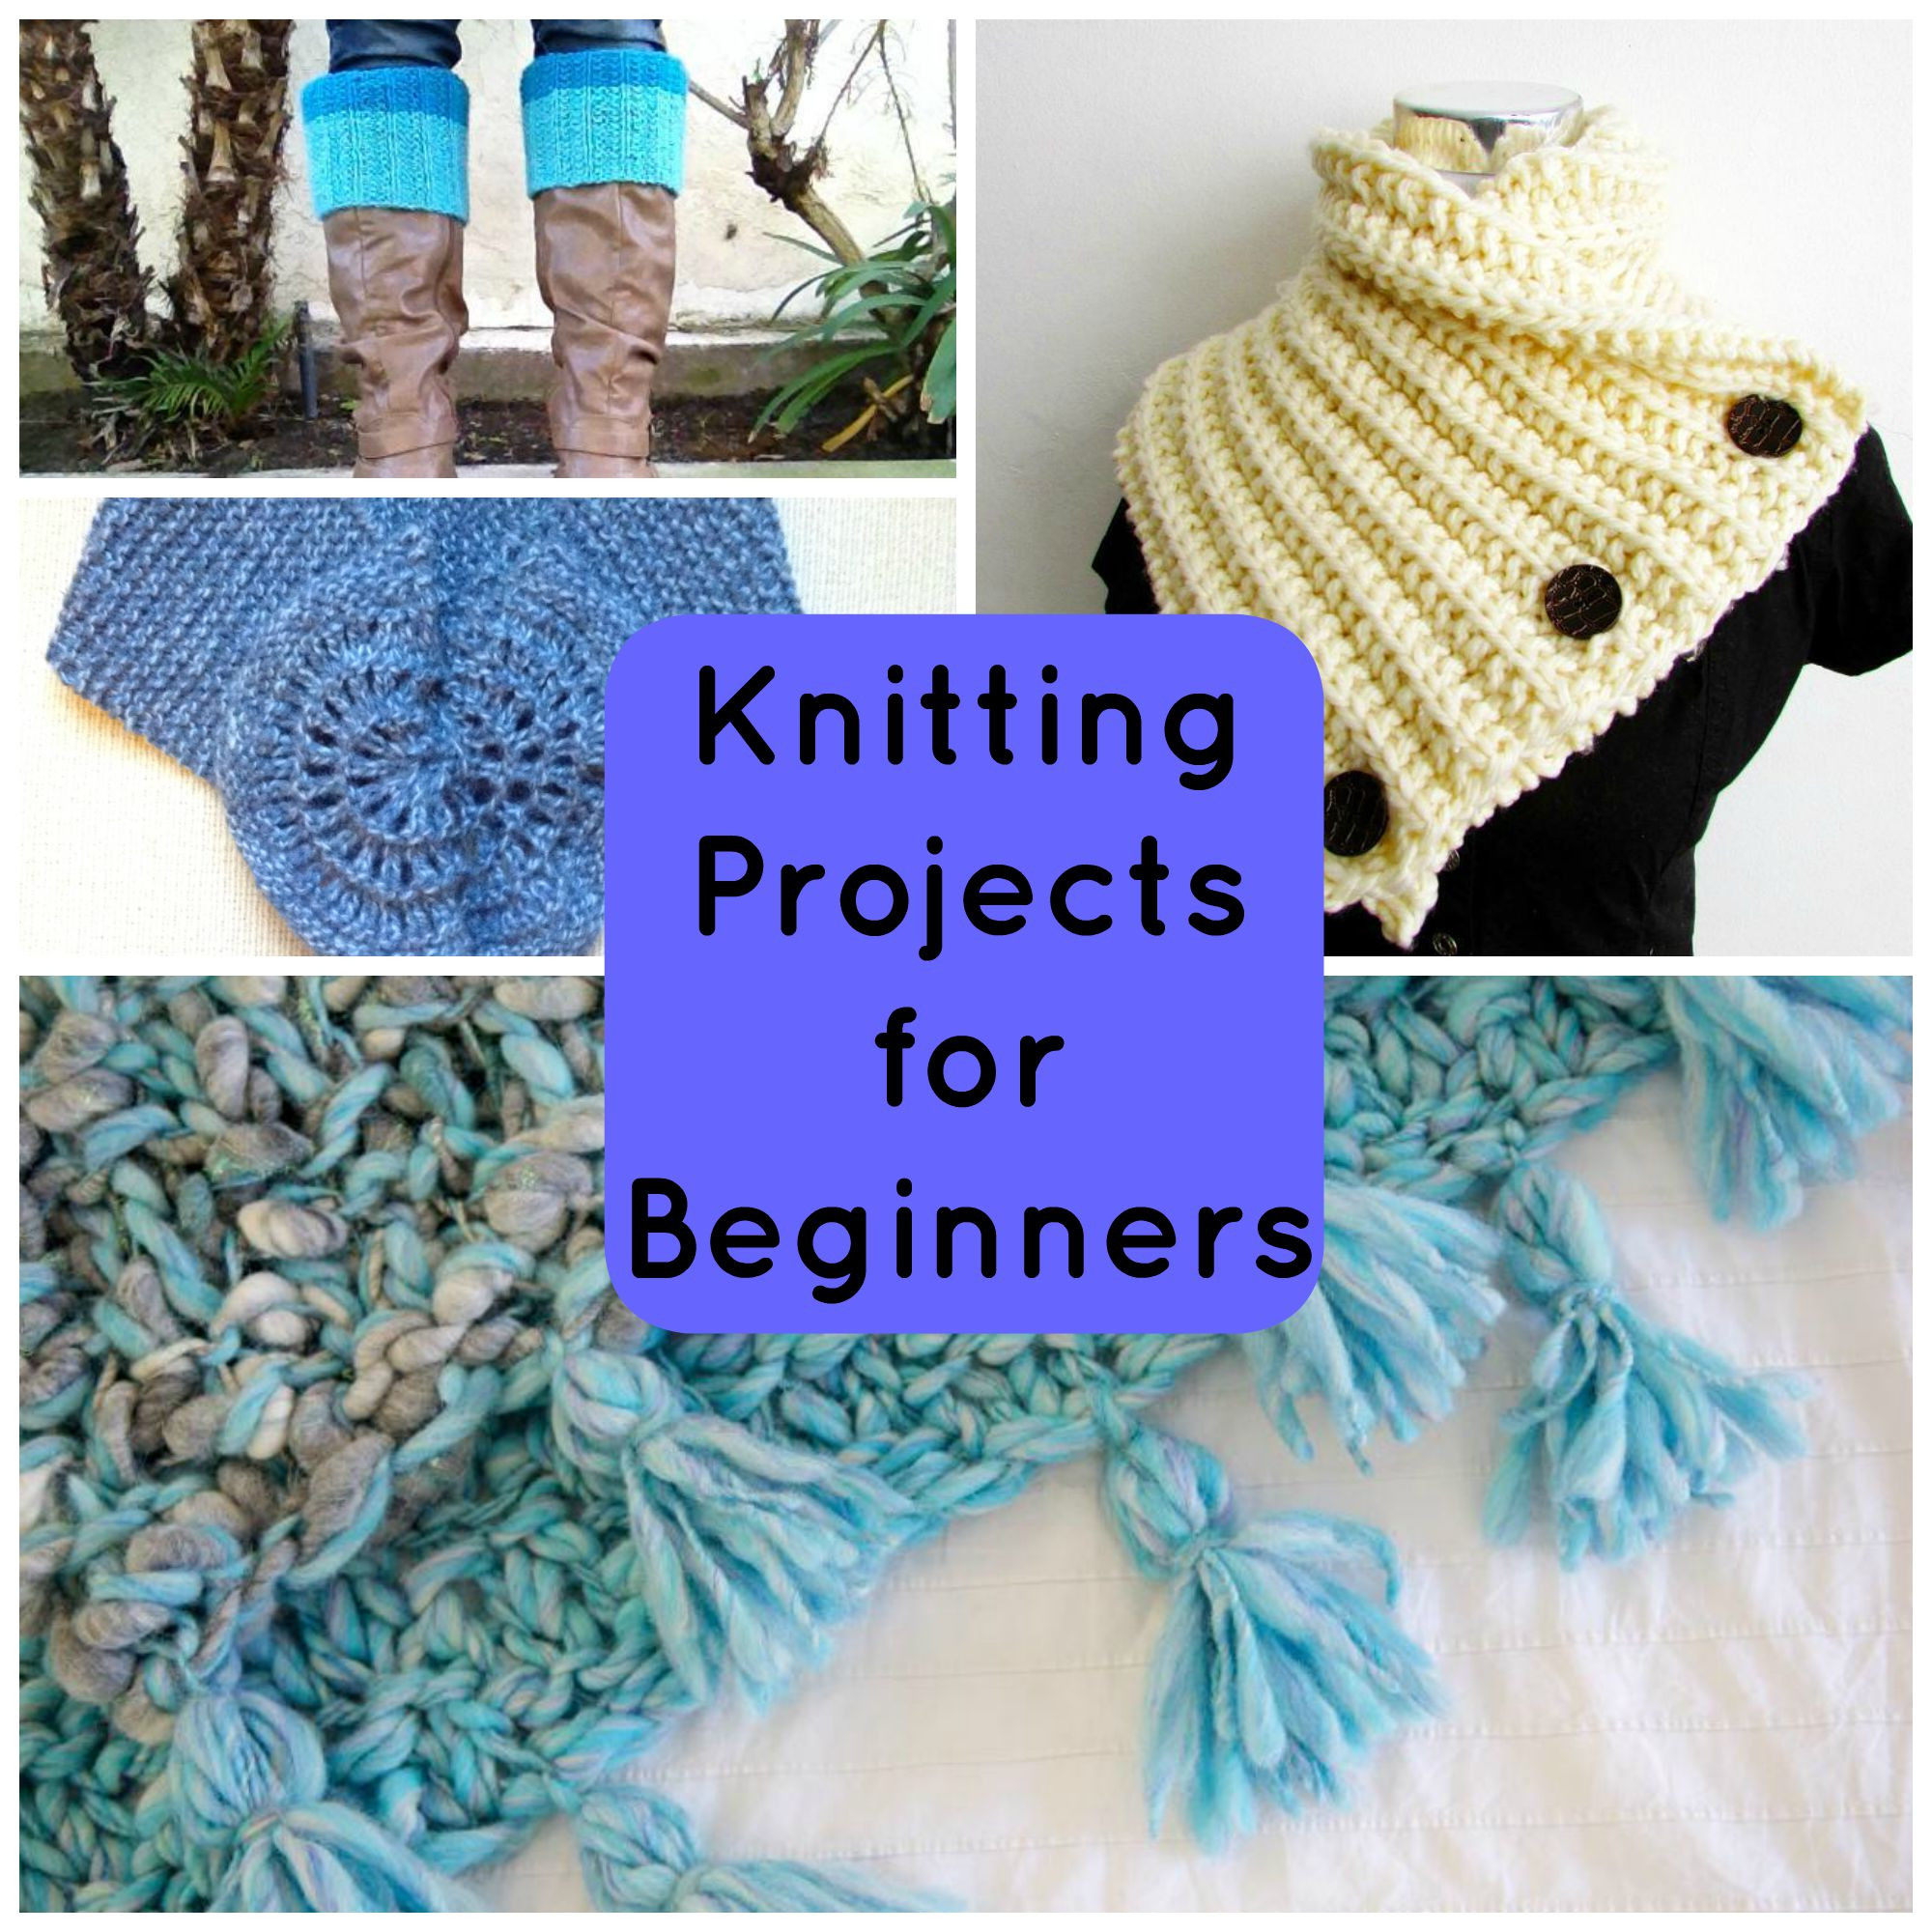 Knitting Projects Inspirational Not Boring Knitting Patterns for Beginners Of Top 45 Ideas Knitting Projects